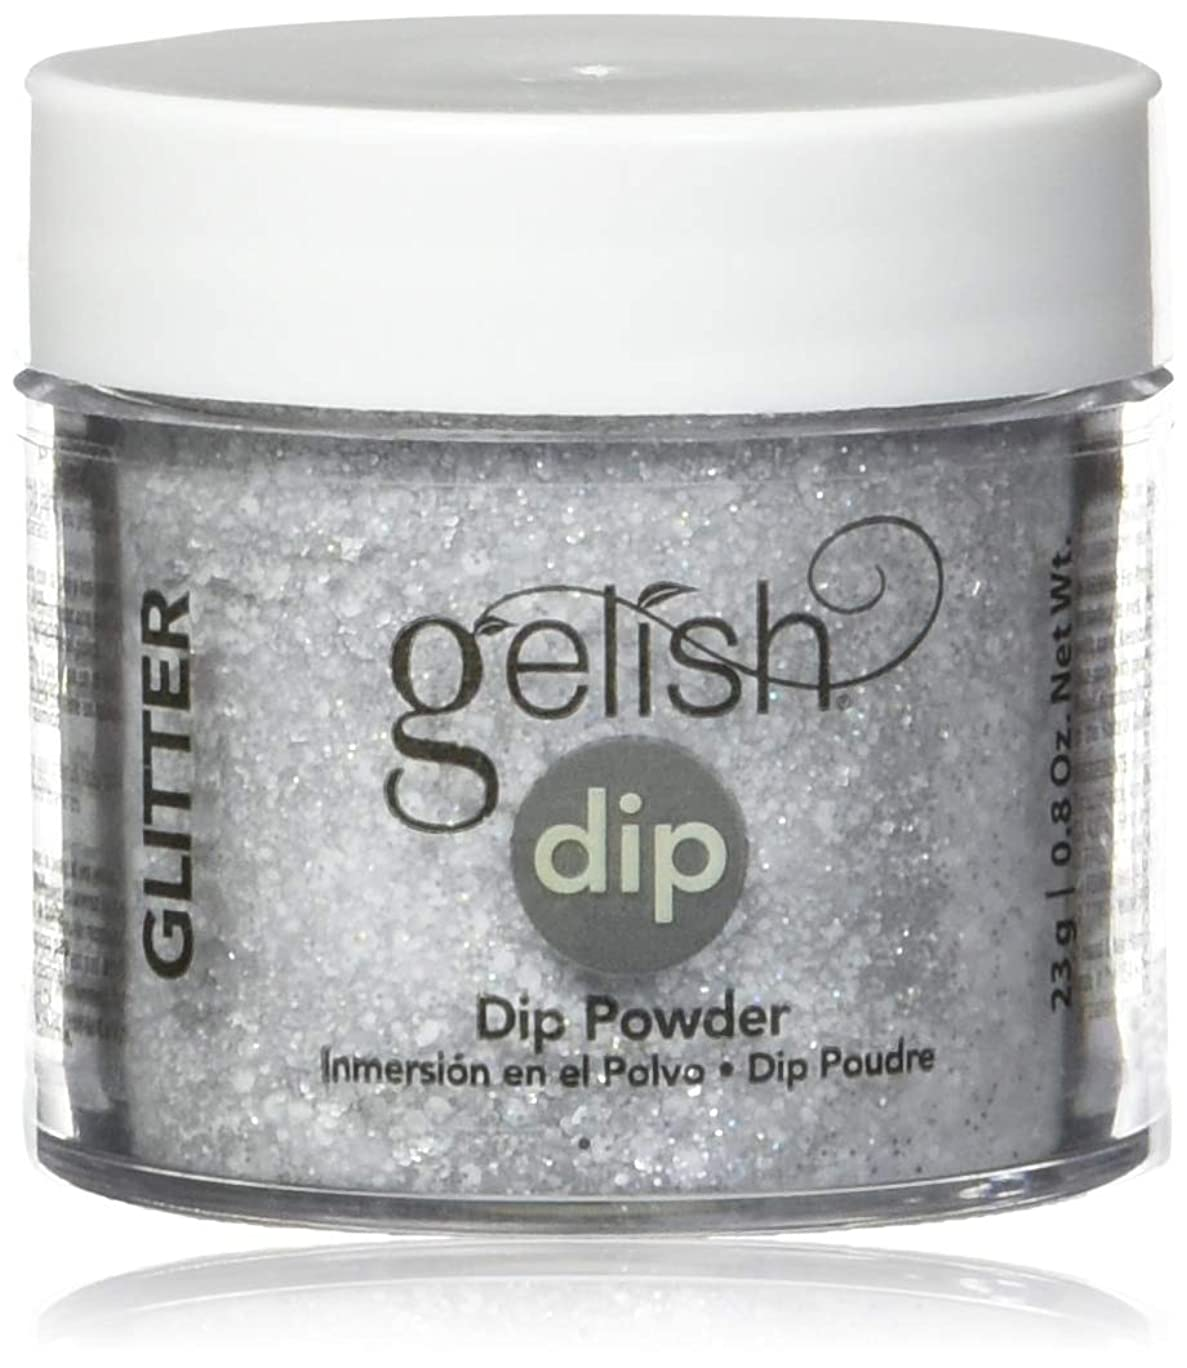 ぜいたく適性アサーHarmony Gelish - Acrylic Dip Powder - Am I Making You Gelish? - 23g / 0.8oz